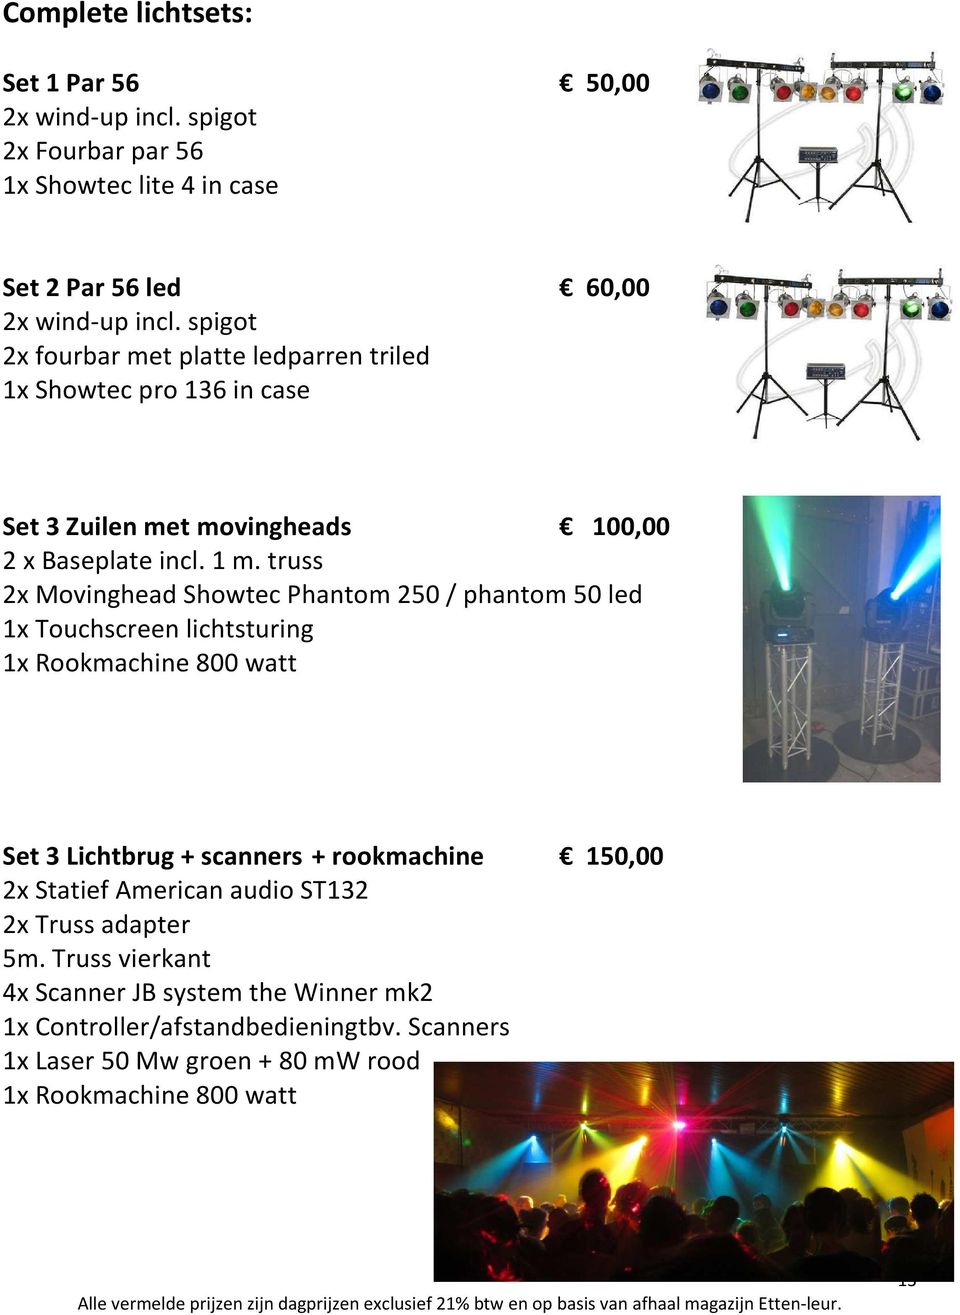 truss 2x Movinghead Showtec Phantom 250 / phantom 50 led 1x Touchscreen lichtsturing 1x Rookmachine 800 watt Set 3 Lichtbrug + scanners + rookmachine 150,00 2x